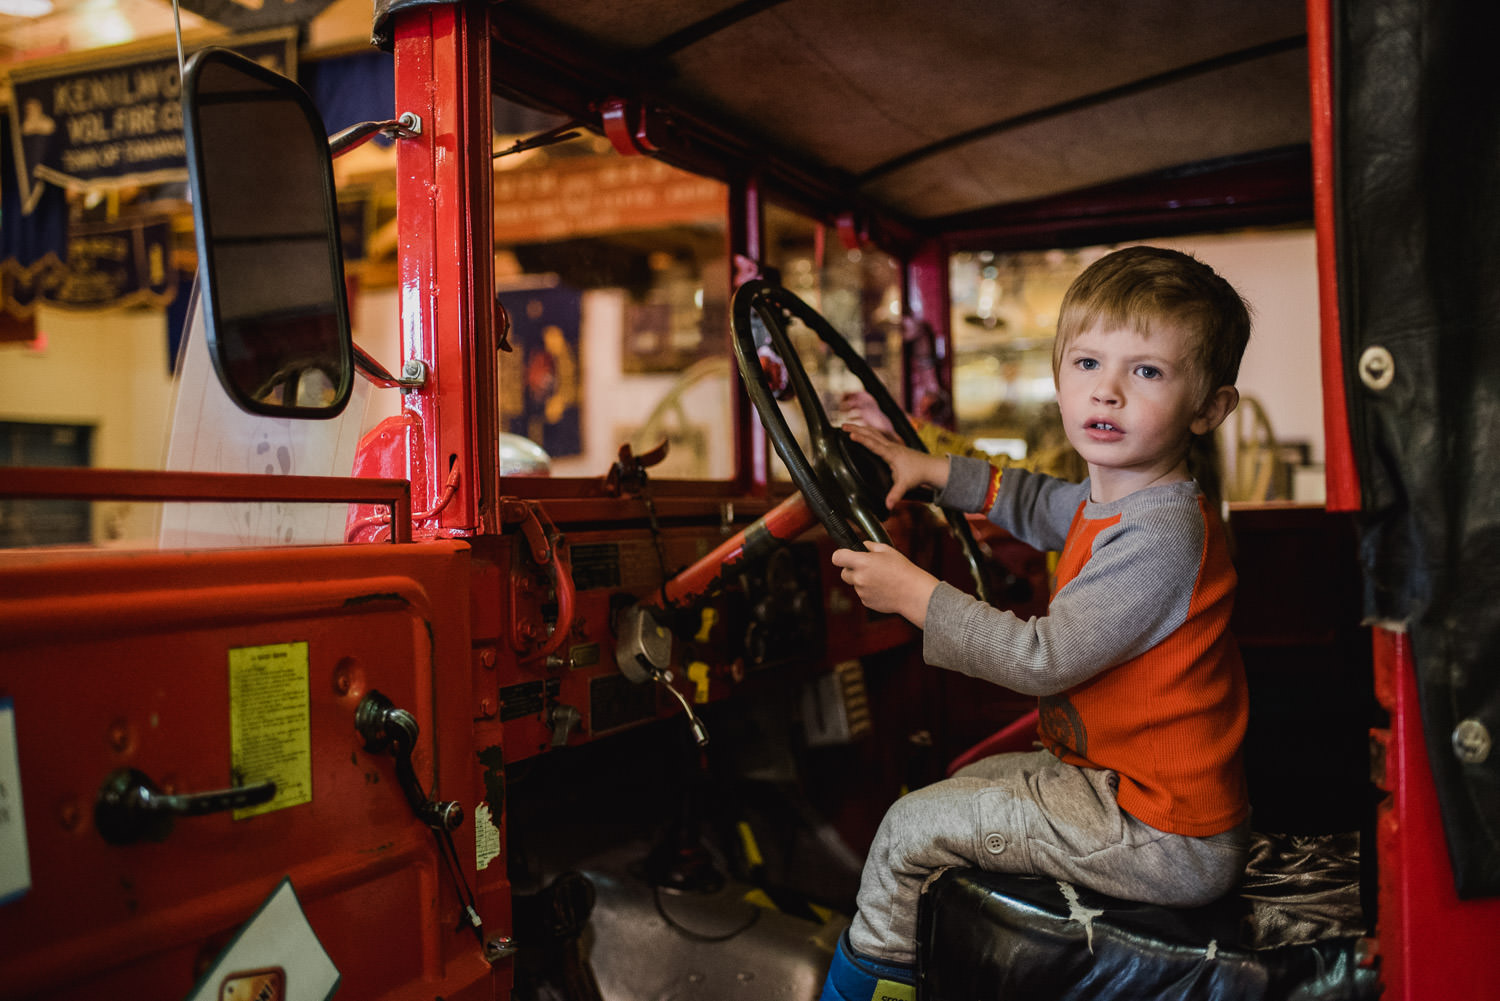 A little boy plays in a fire truck at the fire museum in Hudson, NY.